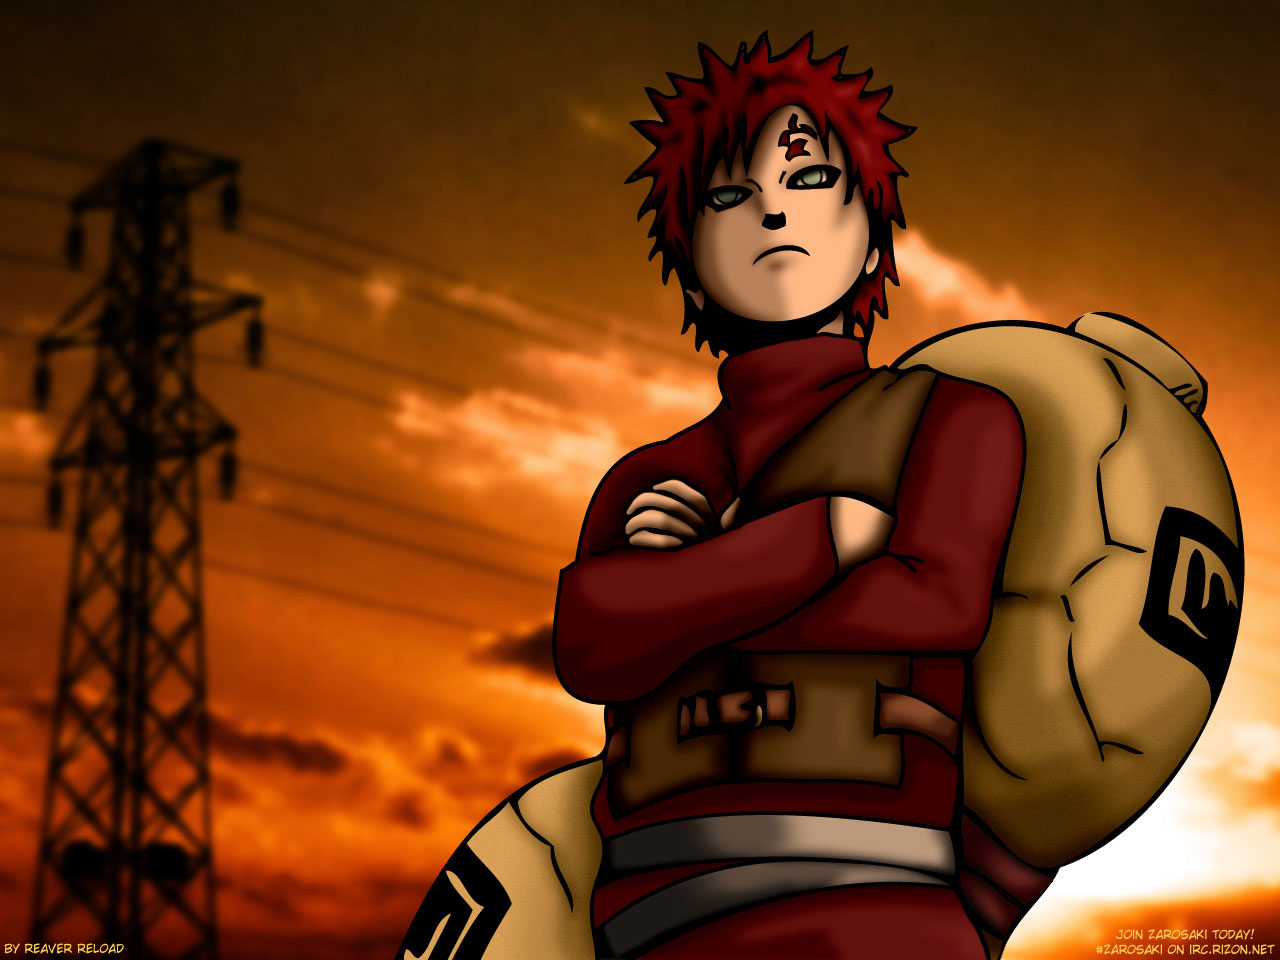 Gaara Wallpaper HD - WallpaperSafari